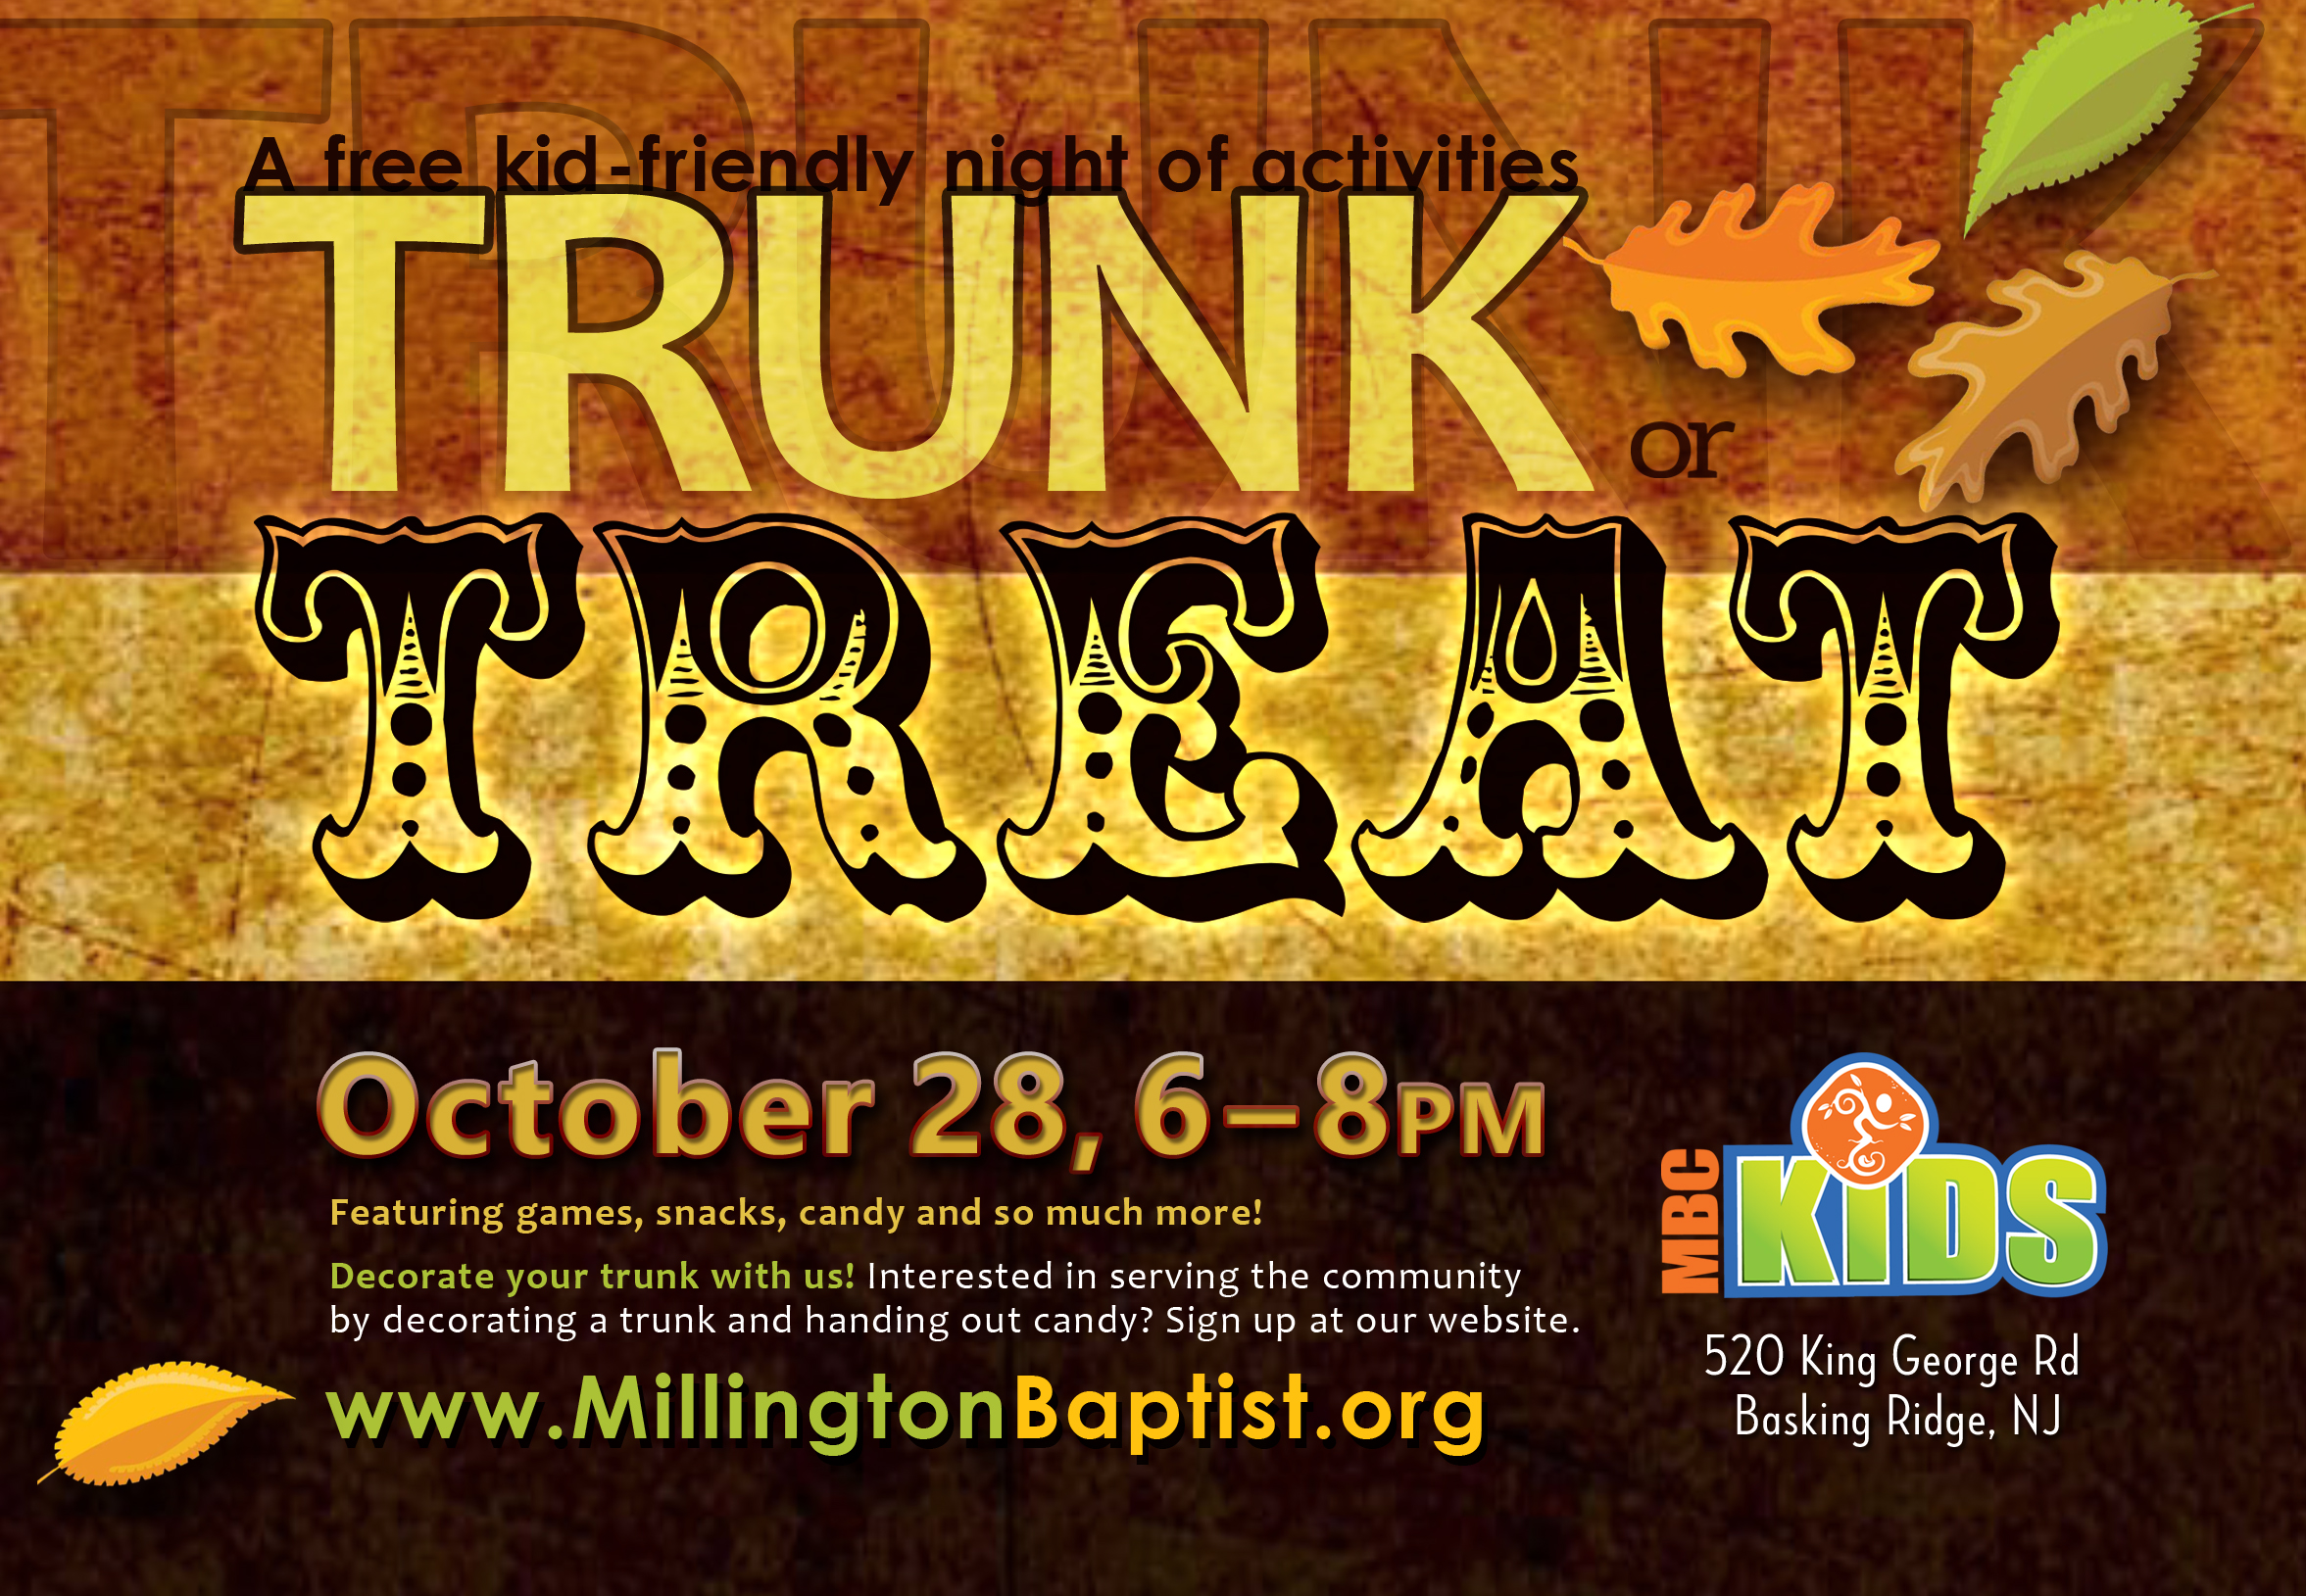 Trunk or treat postcard 2016